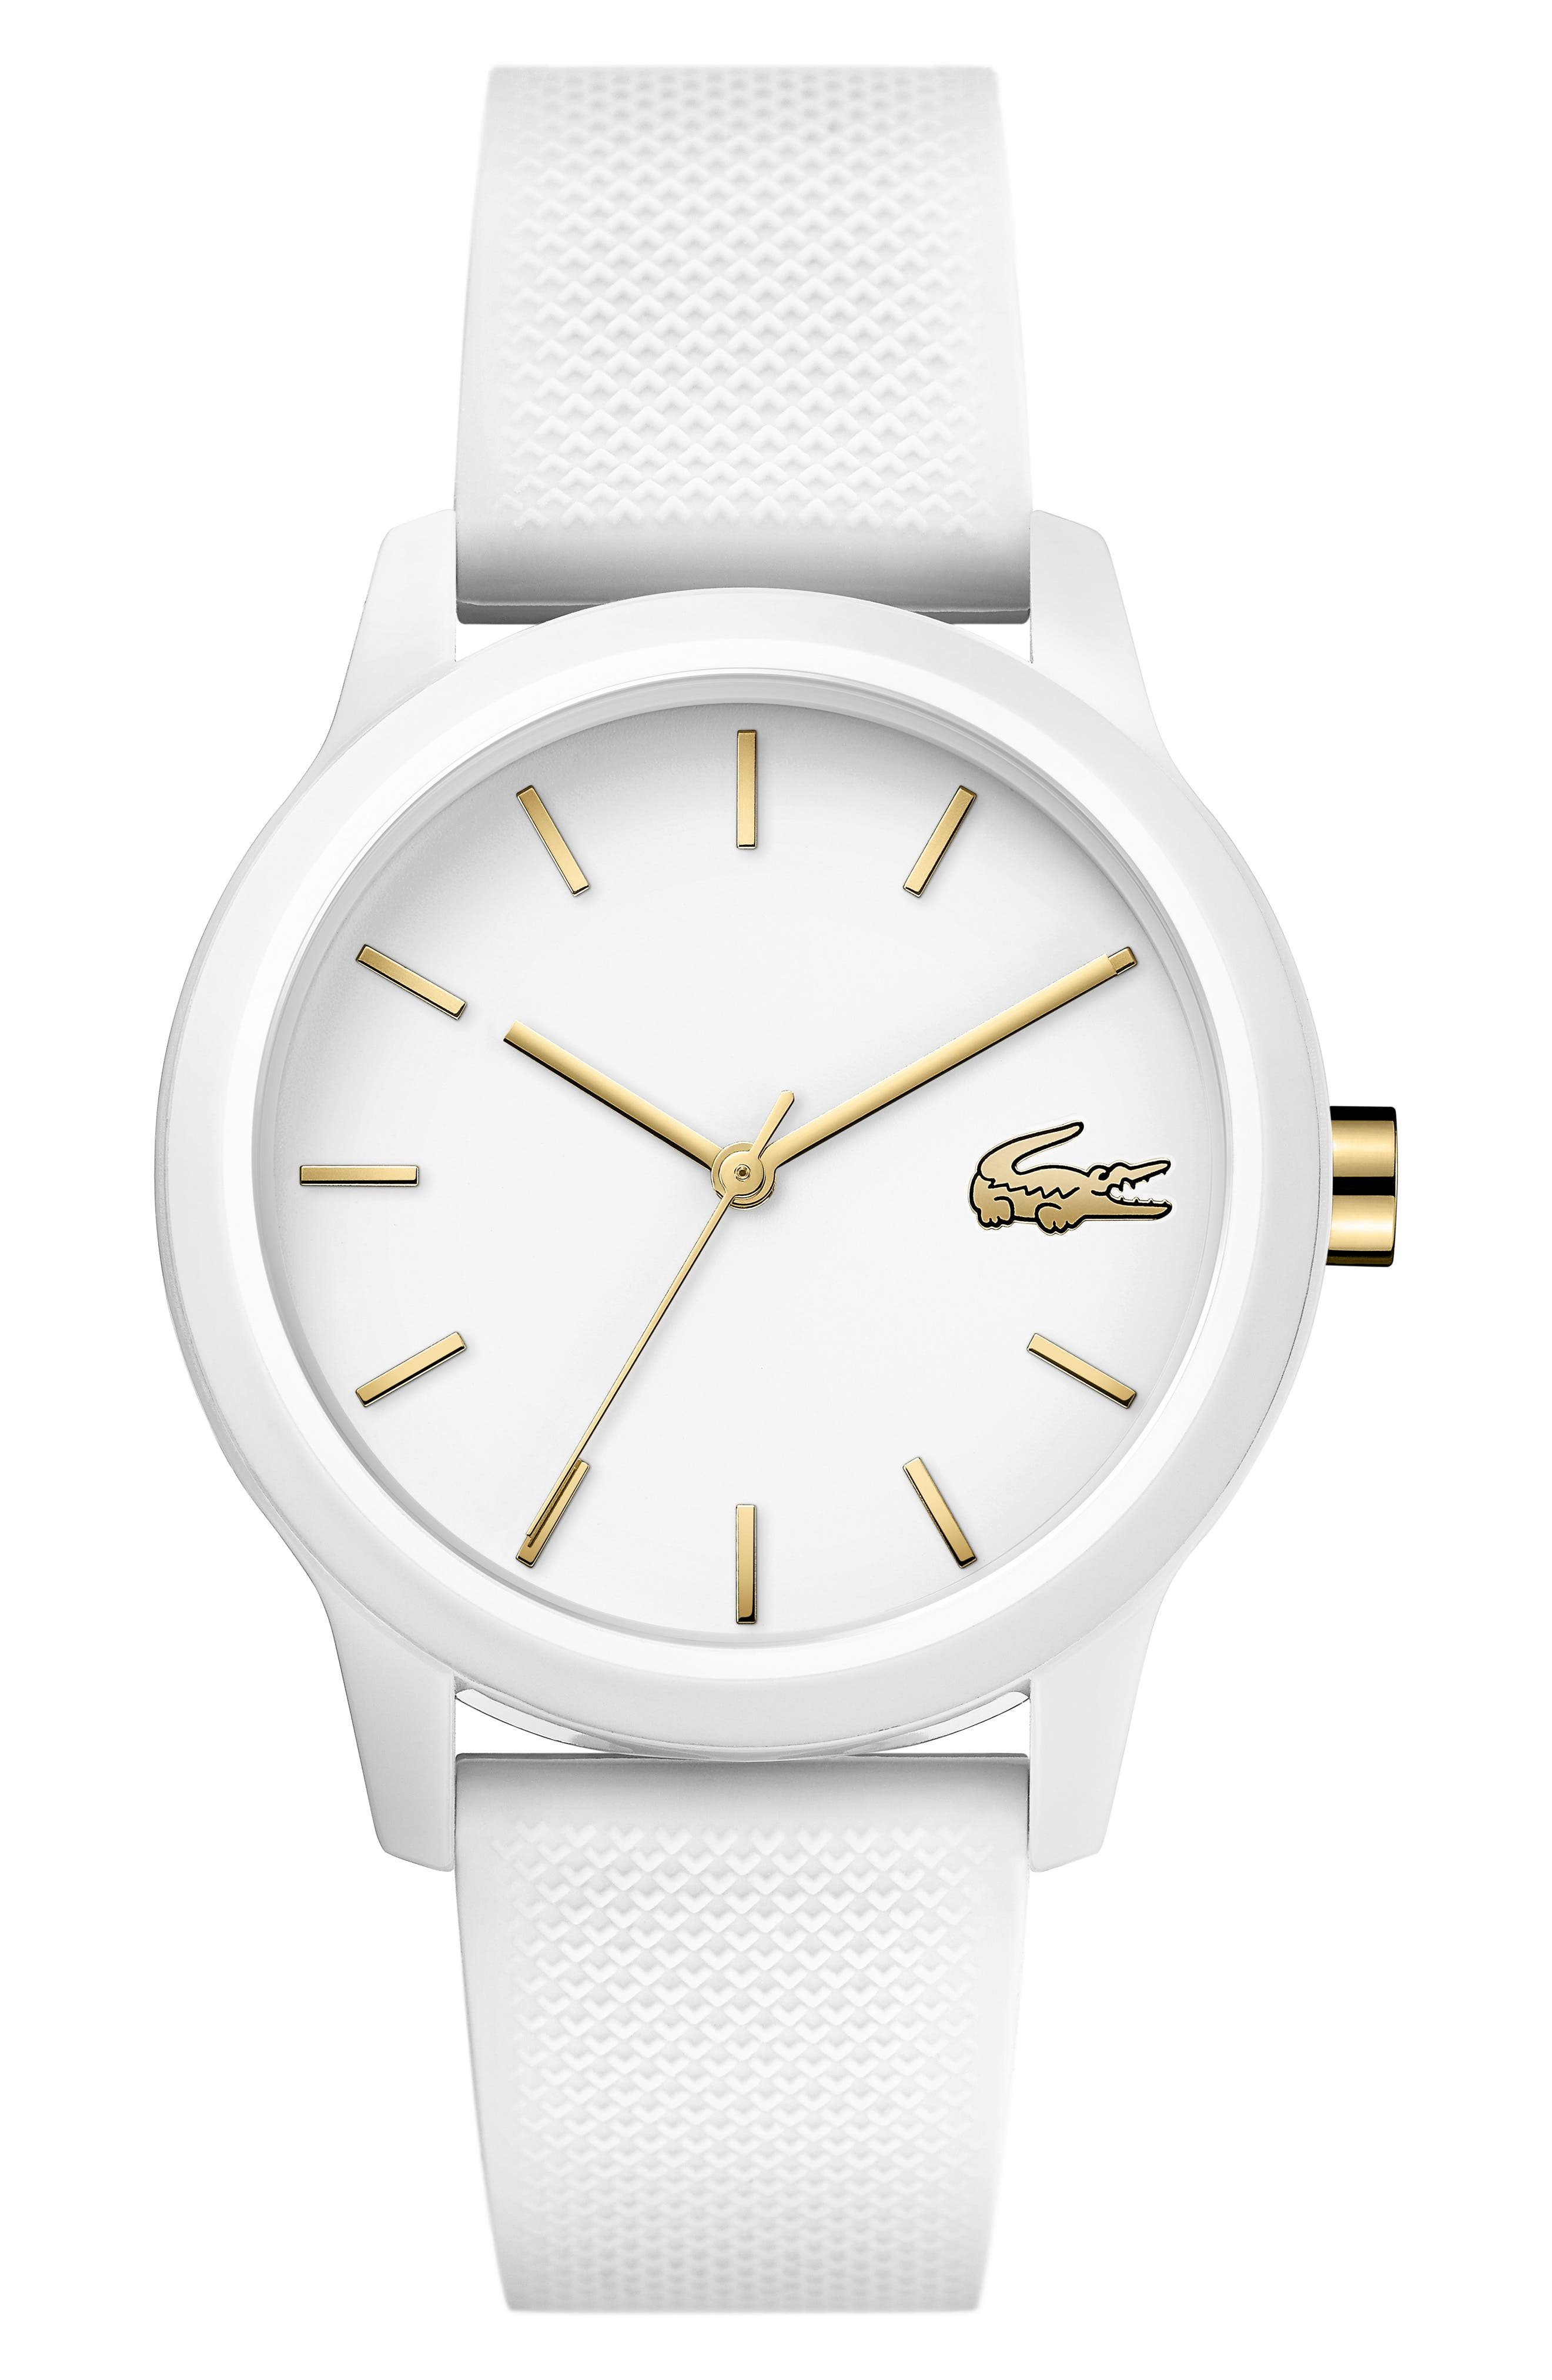 LACOSTE, 12.12 Silicone Strap Watch, 36mm, Main thumbnail 1, color, WHITE